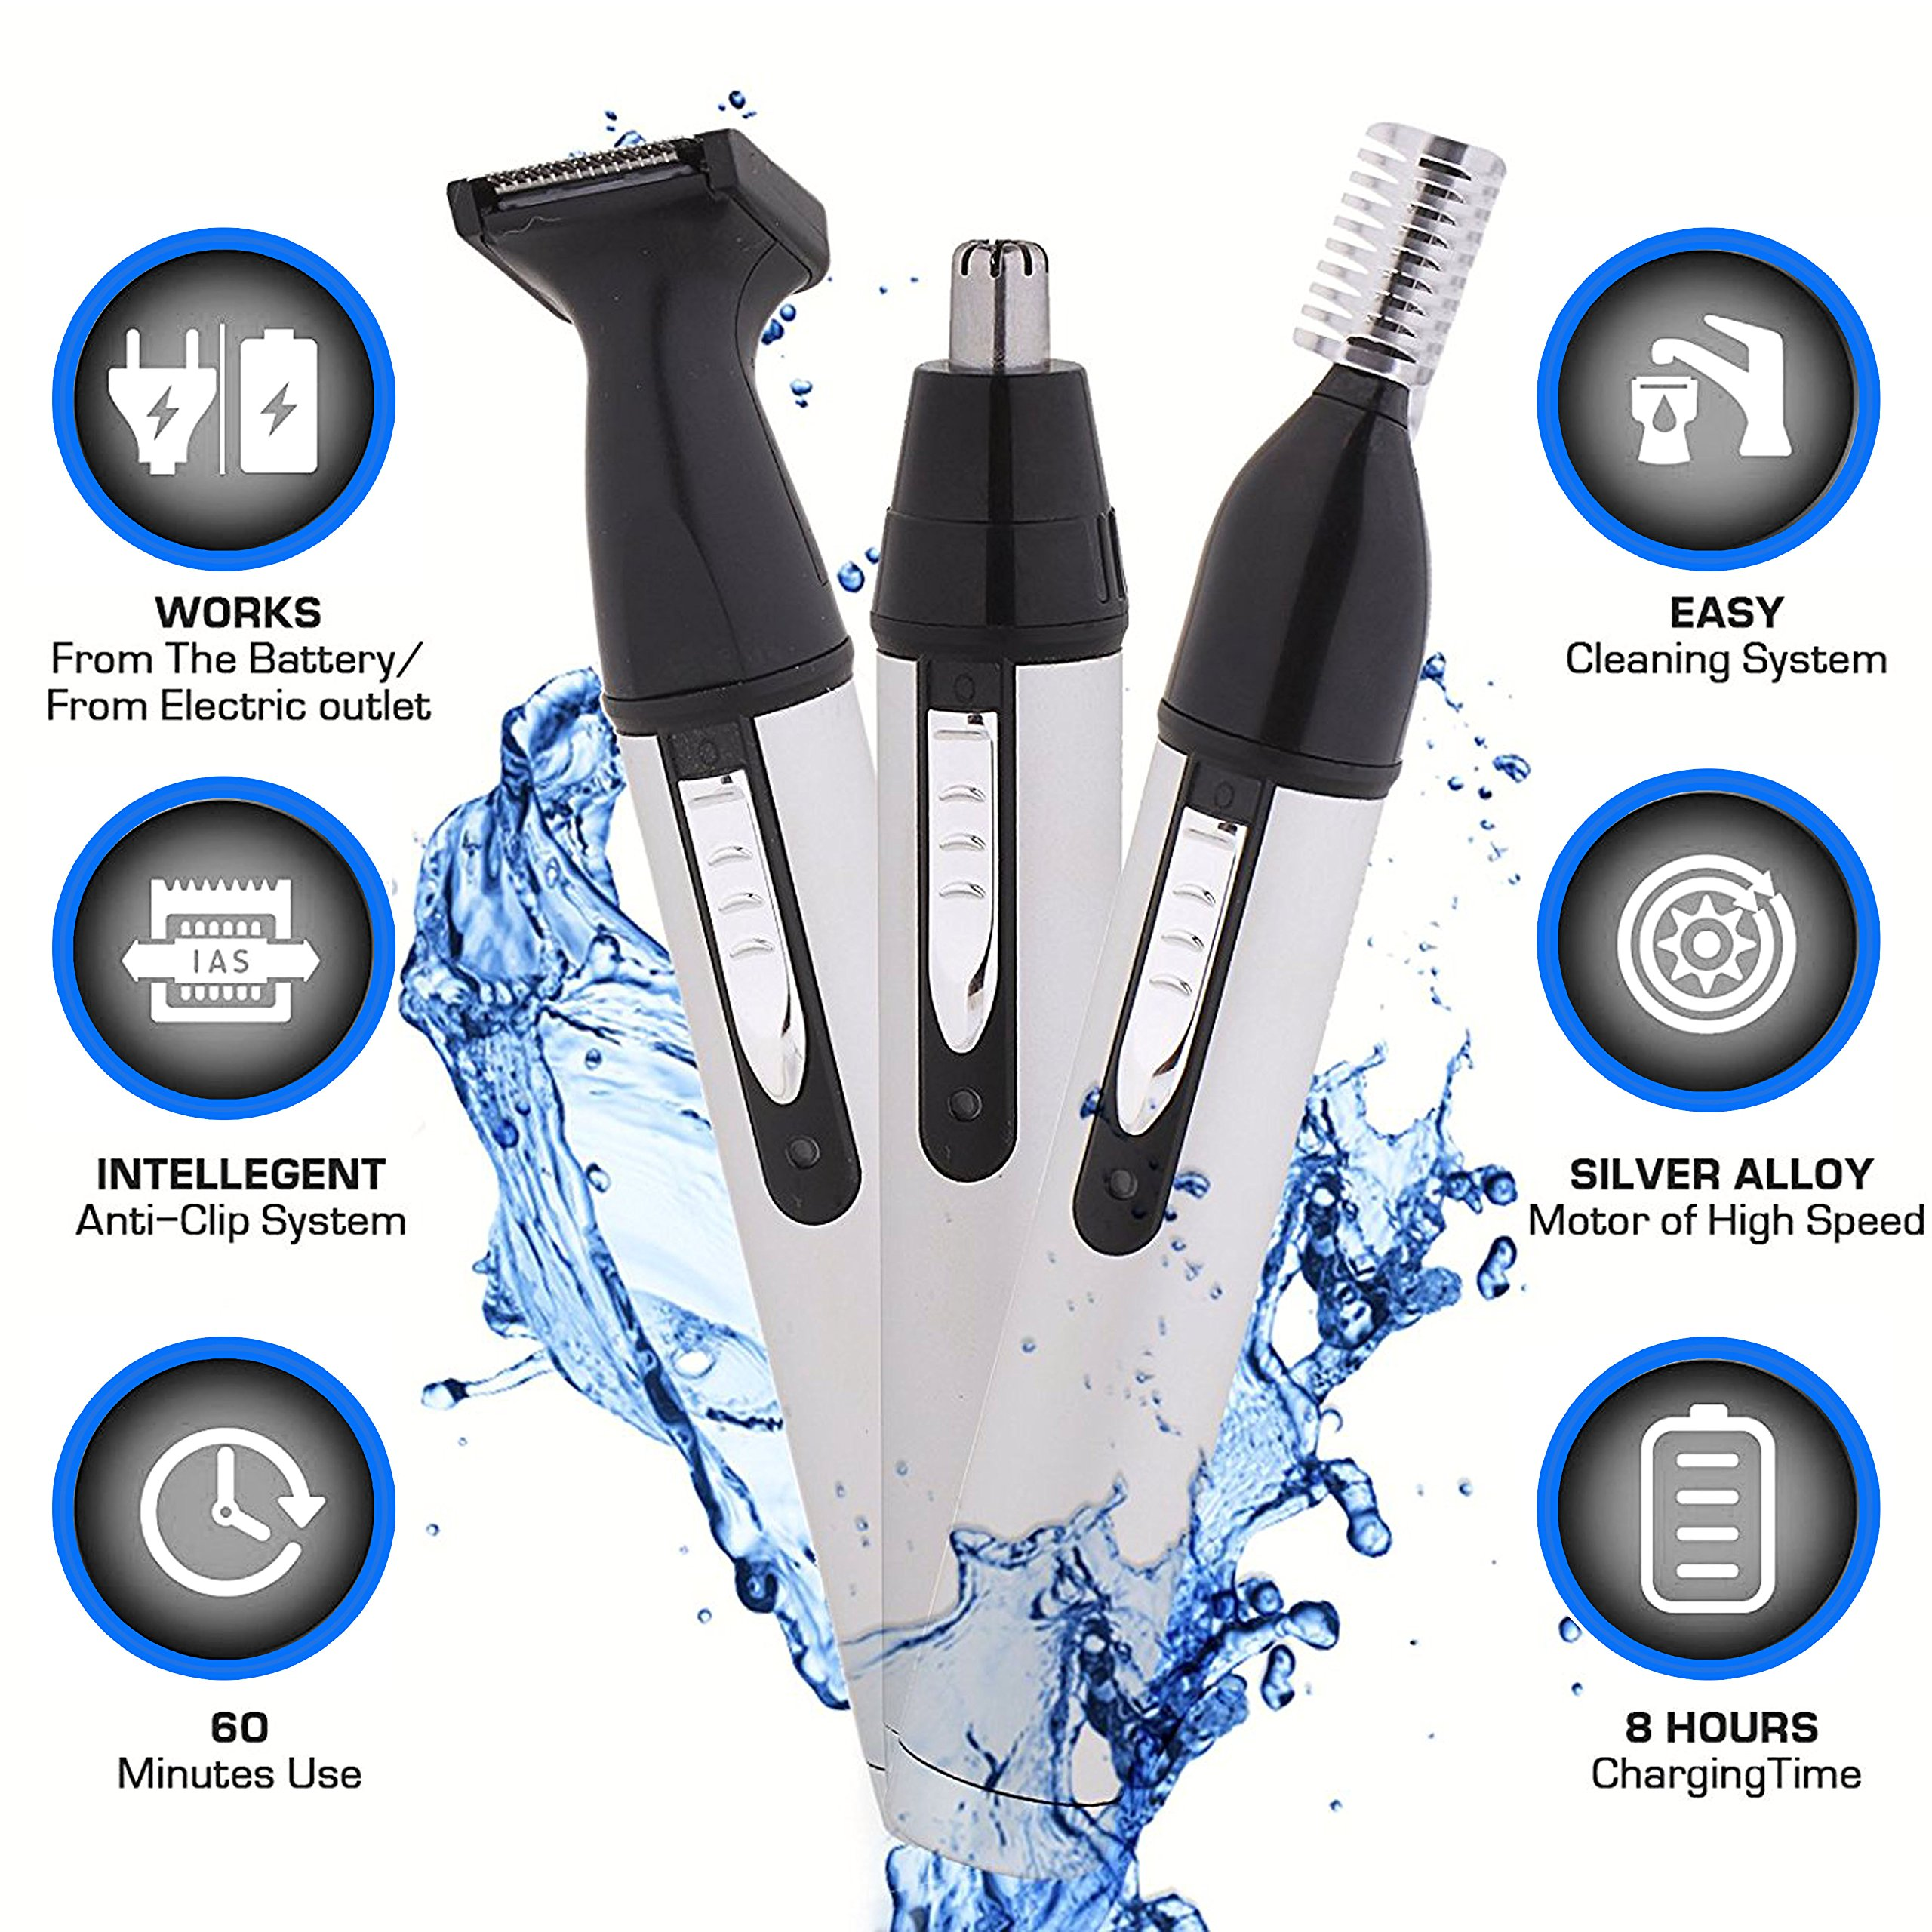 Nose Hair Trimmer - Electric Personal Trimmer for Men Women - Eyebrow Ear Beard Cordless Trimmer - Best Precision Face Portable Trimmer - 3 in 1 Facial Stainless Steel Professional Nose Clippers